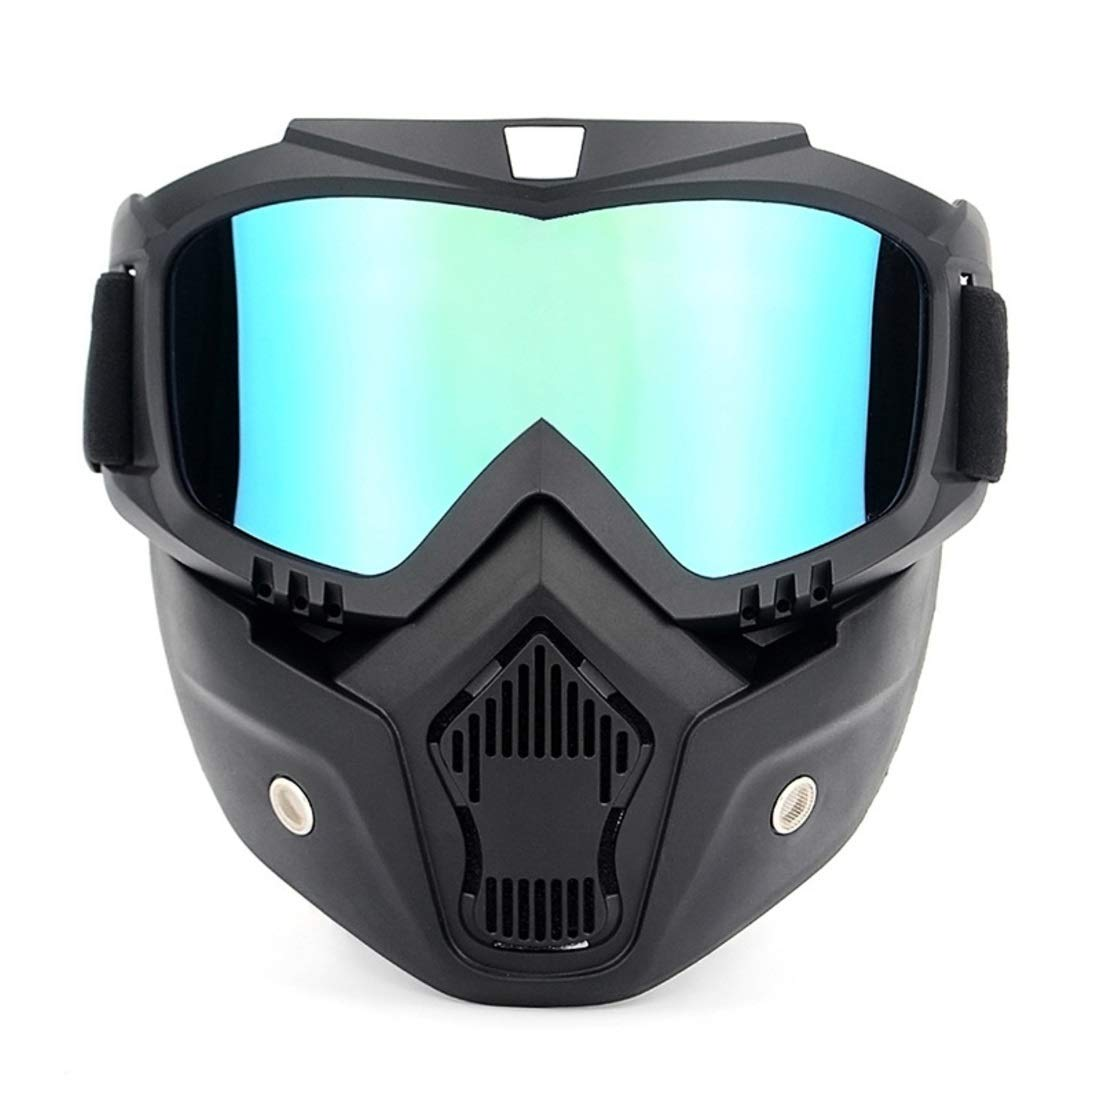 BAOYIT Knight Equipped with Retro Mask Goggles Riding Cool Helmet Glasses for Women Men Cycling Accessories (Color : B) by BAOYIT